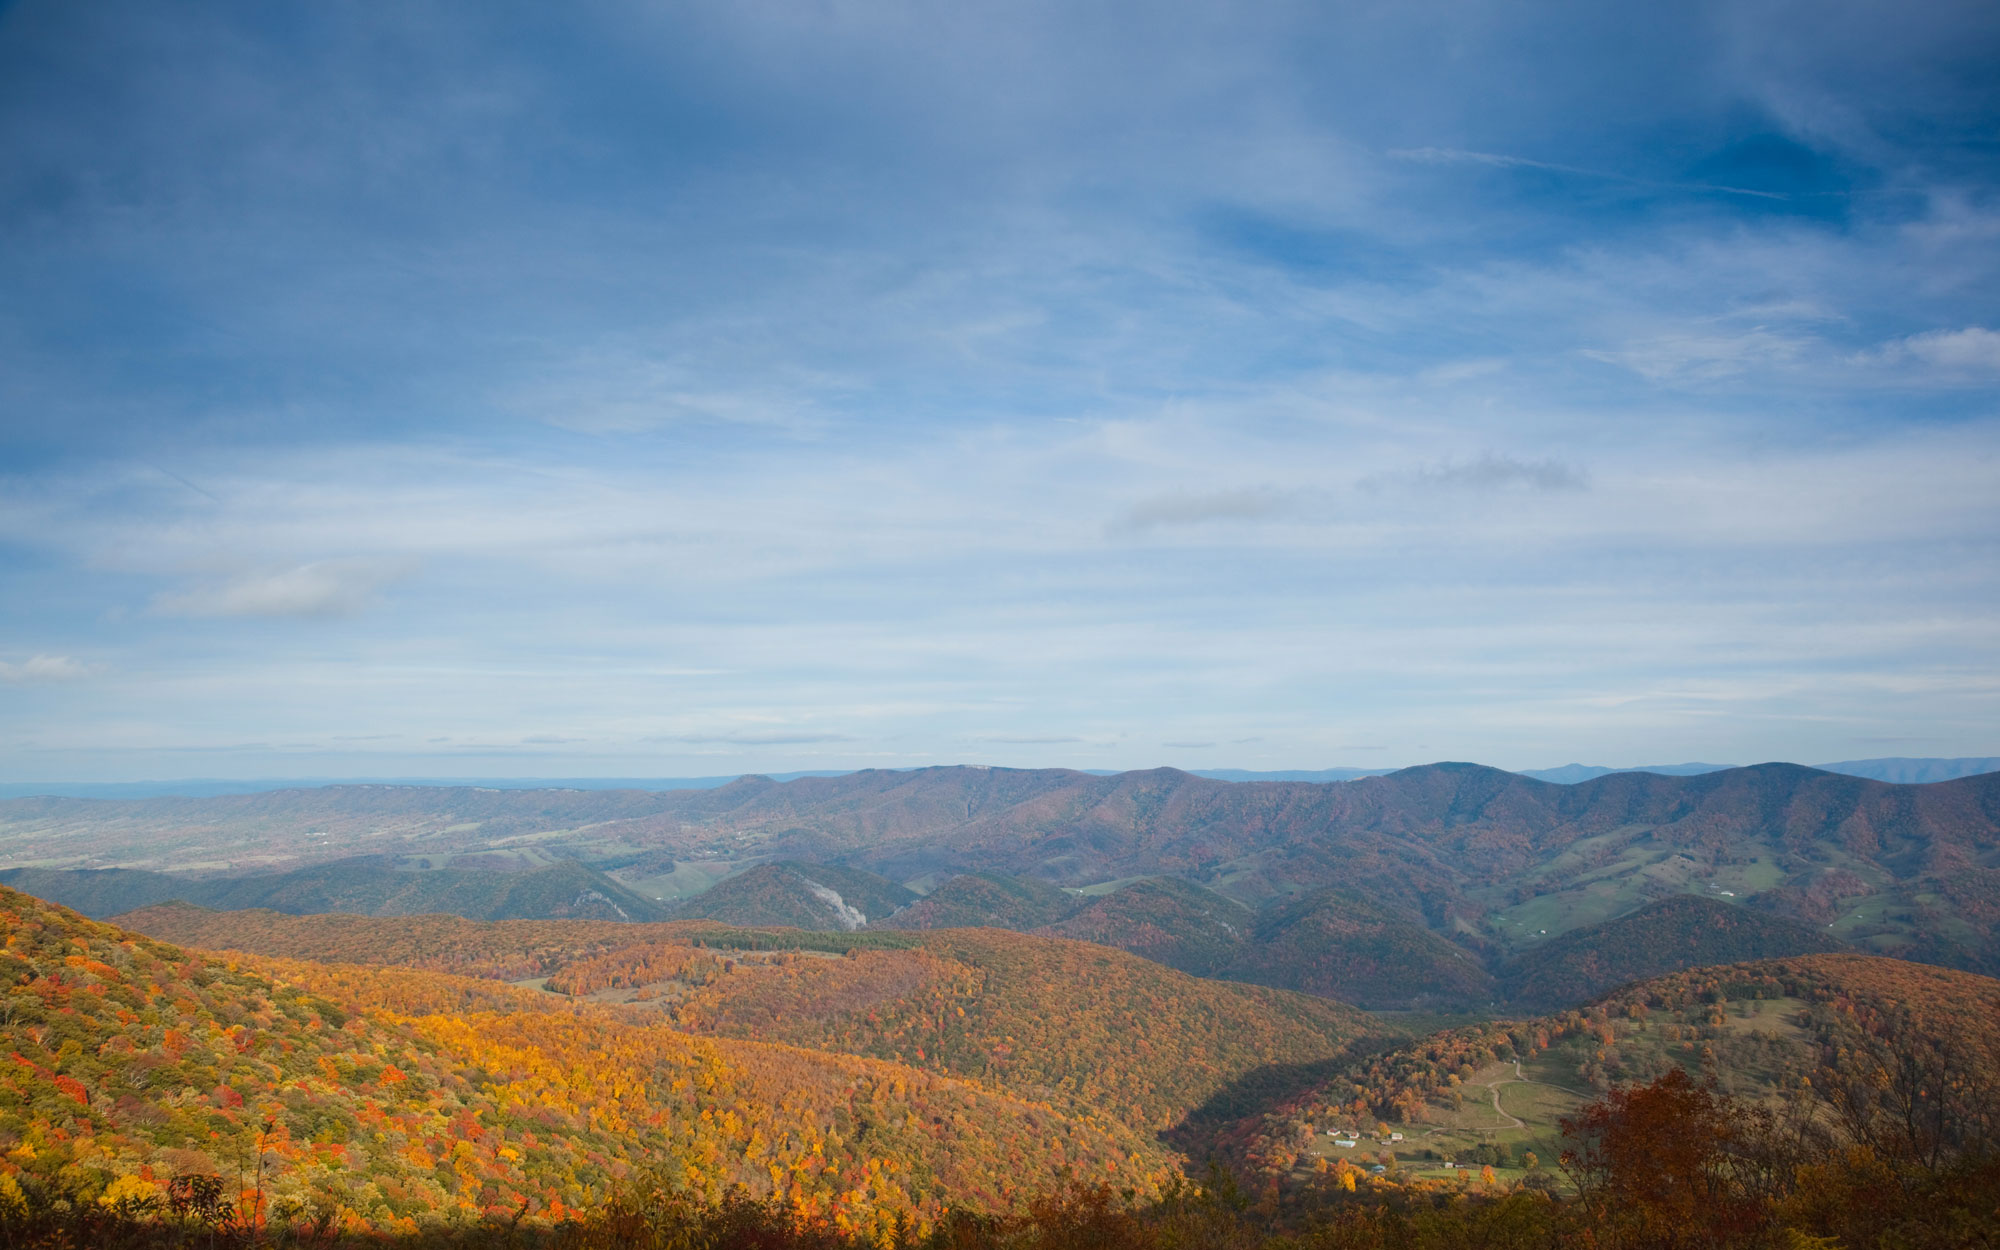 West Virginia from Spruce Knob